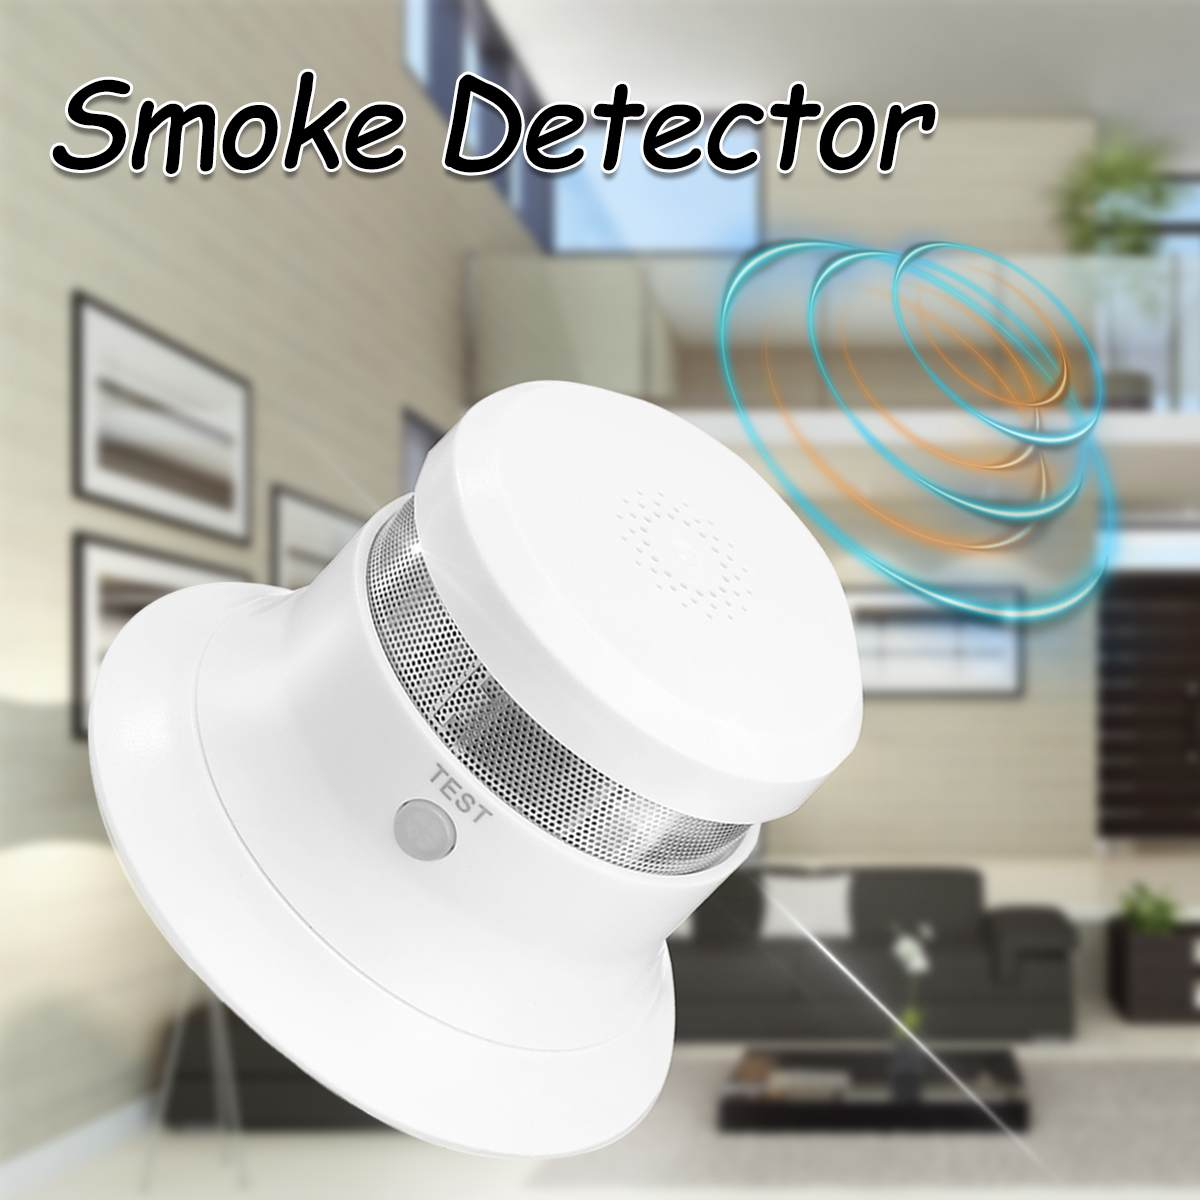 Portable Wireless Smoke Alarm Detector Sensor Hoisting Mounted Wall Mounted For Fires Sound Alarm Home Security Alarm System